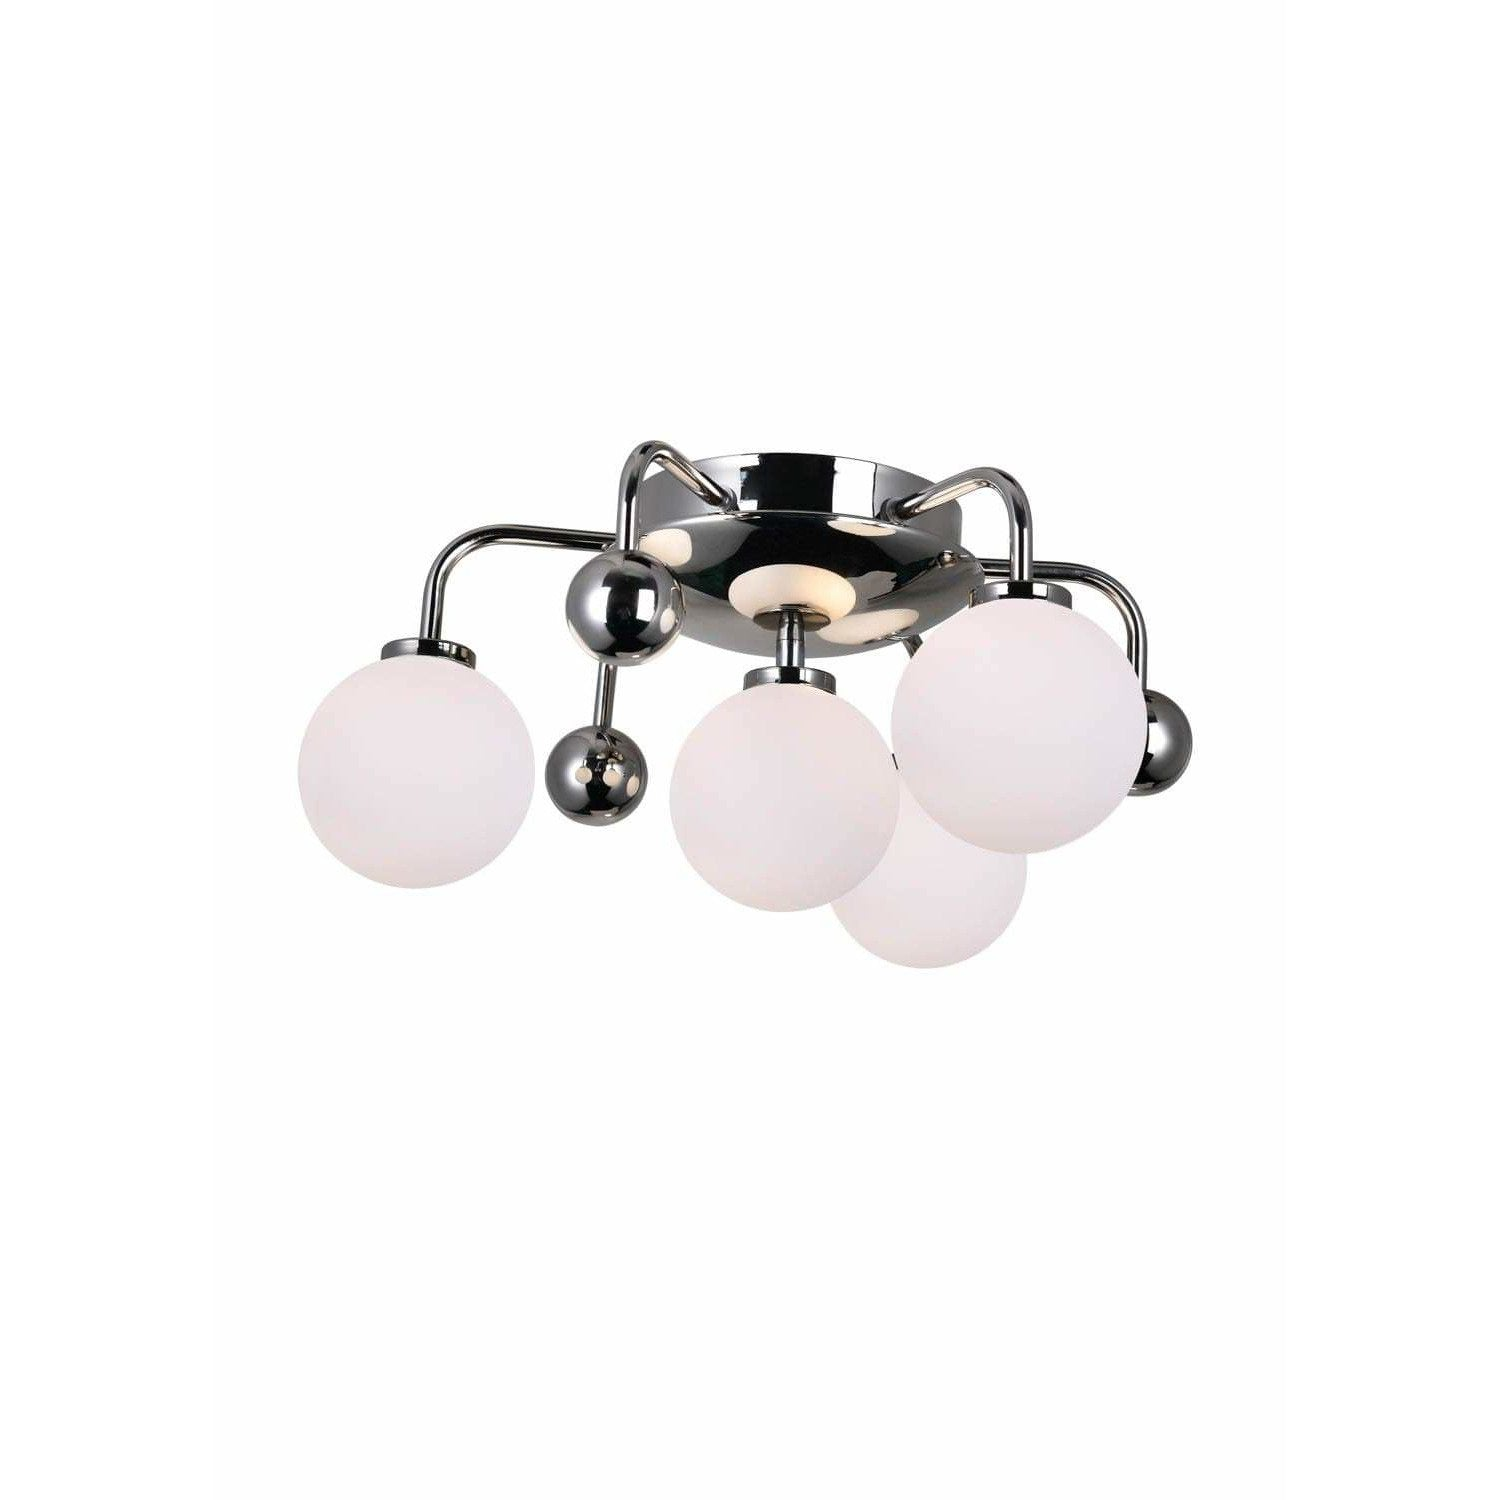 CWI Lighting Flush Mounts Polished Nickel Element 4 Light Flush Mount with Polished Nickel Finish by CWI Lighting 1125C16-4-613